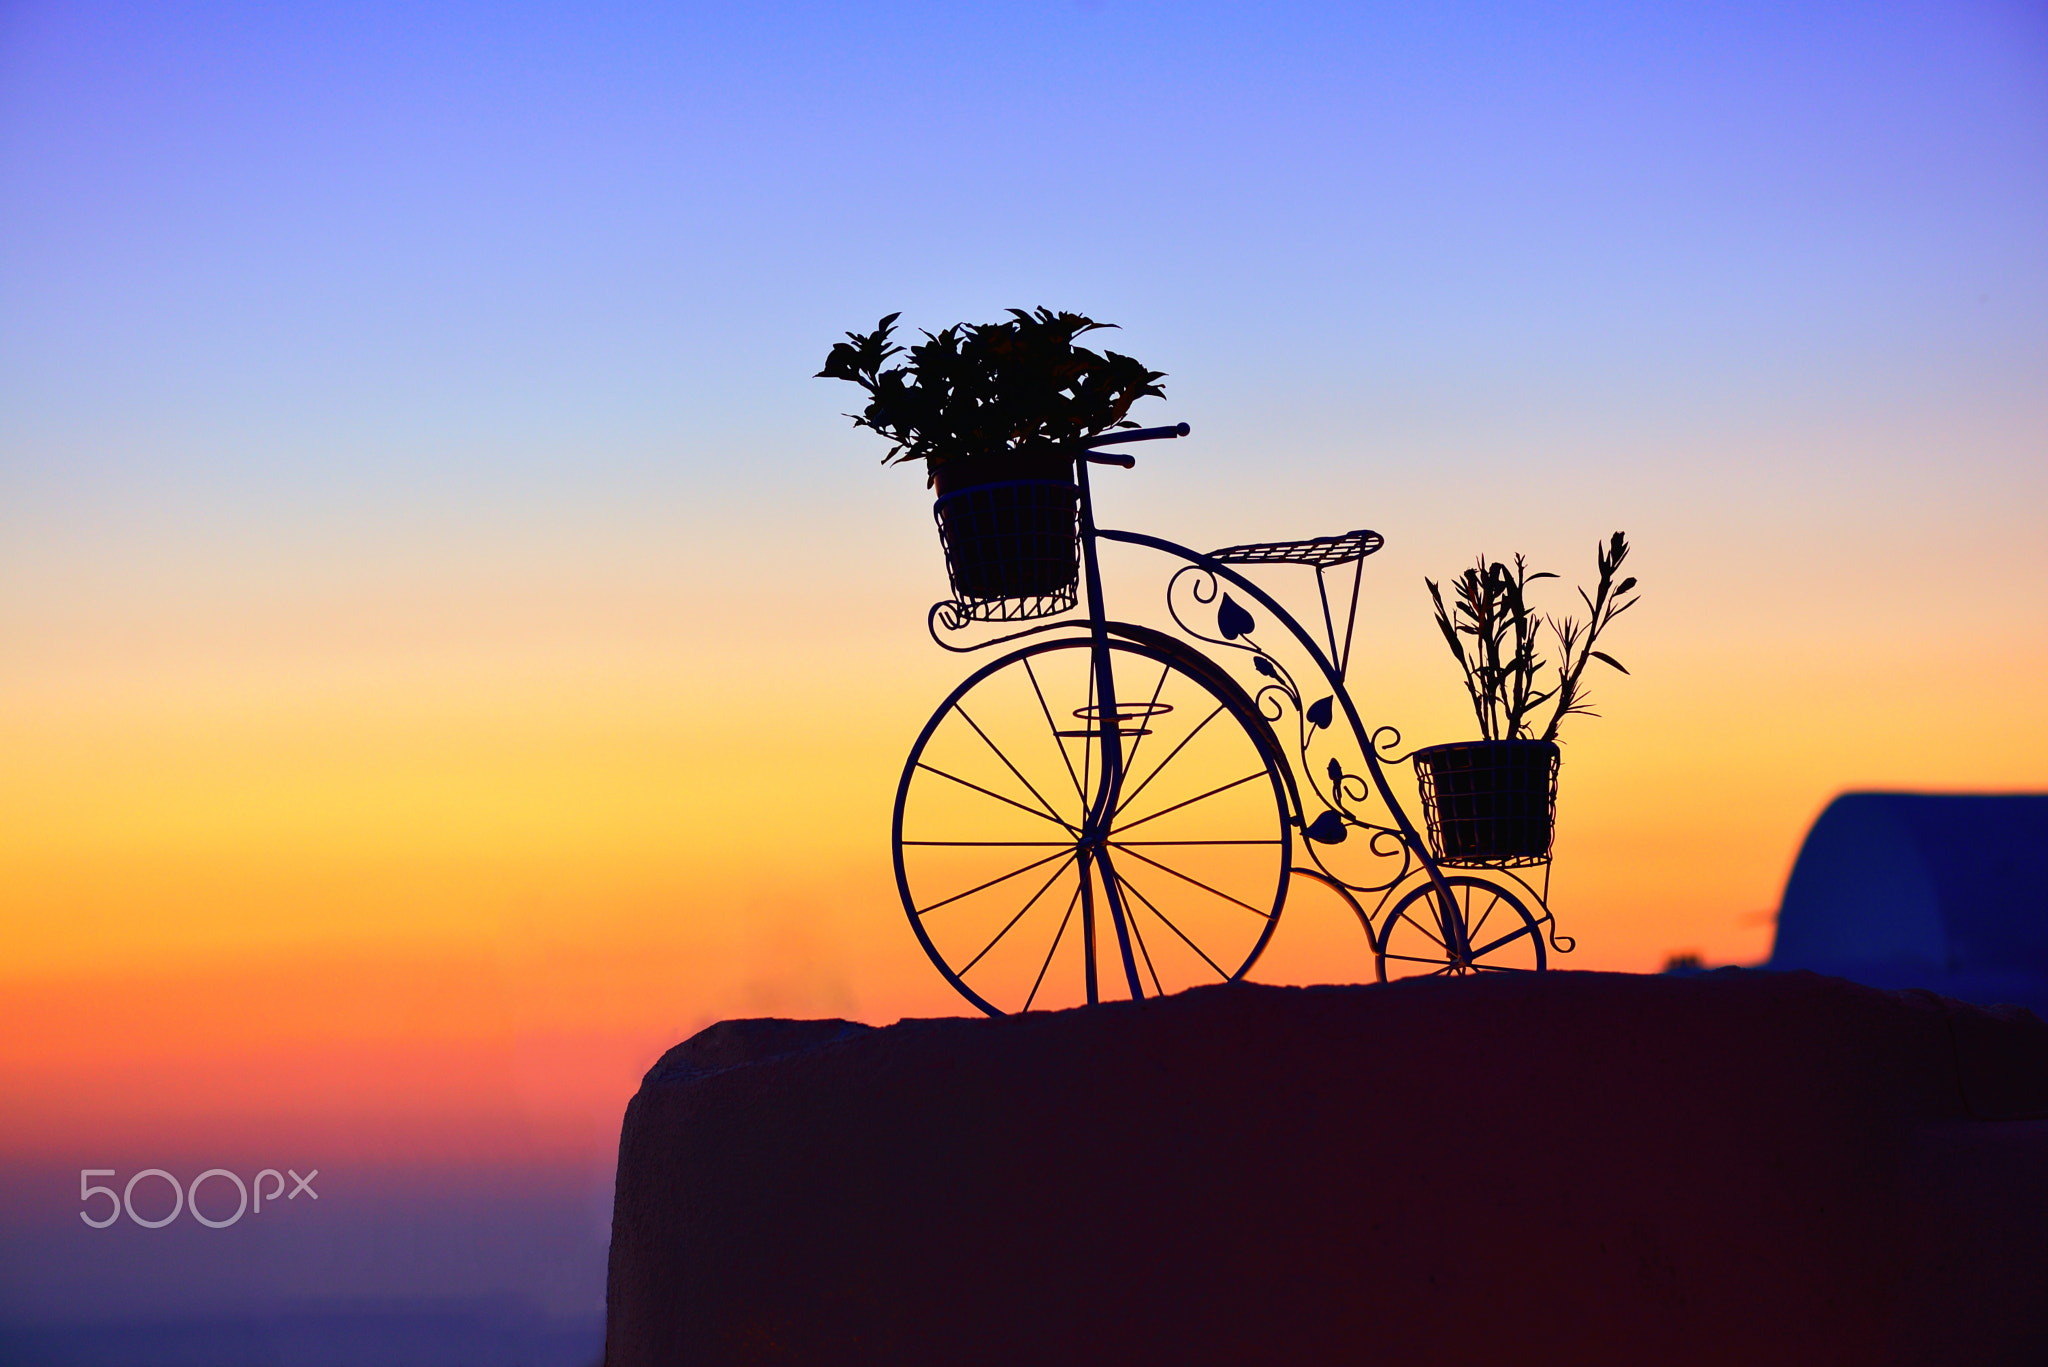 Photograph Bicycle in Oia - Santorini by Sabin Uivarosan on 500px